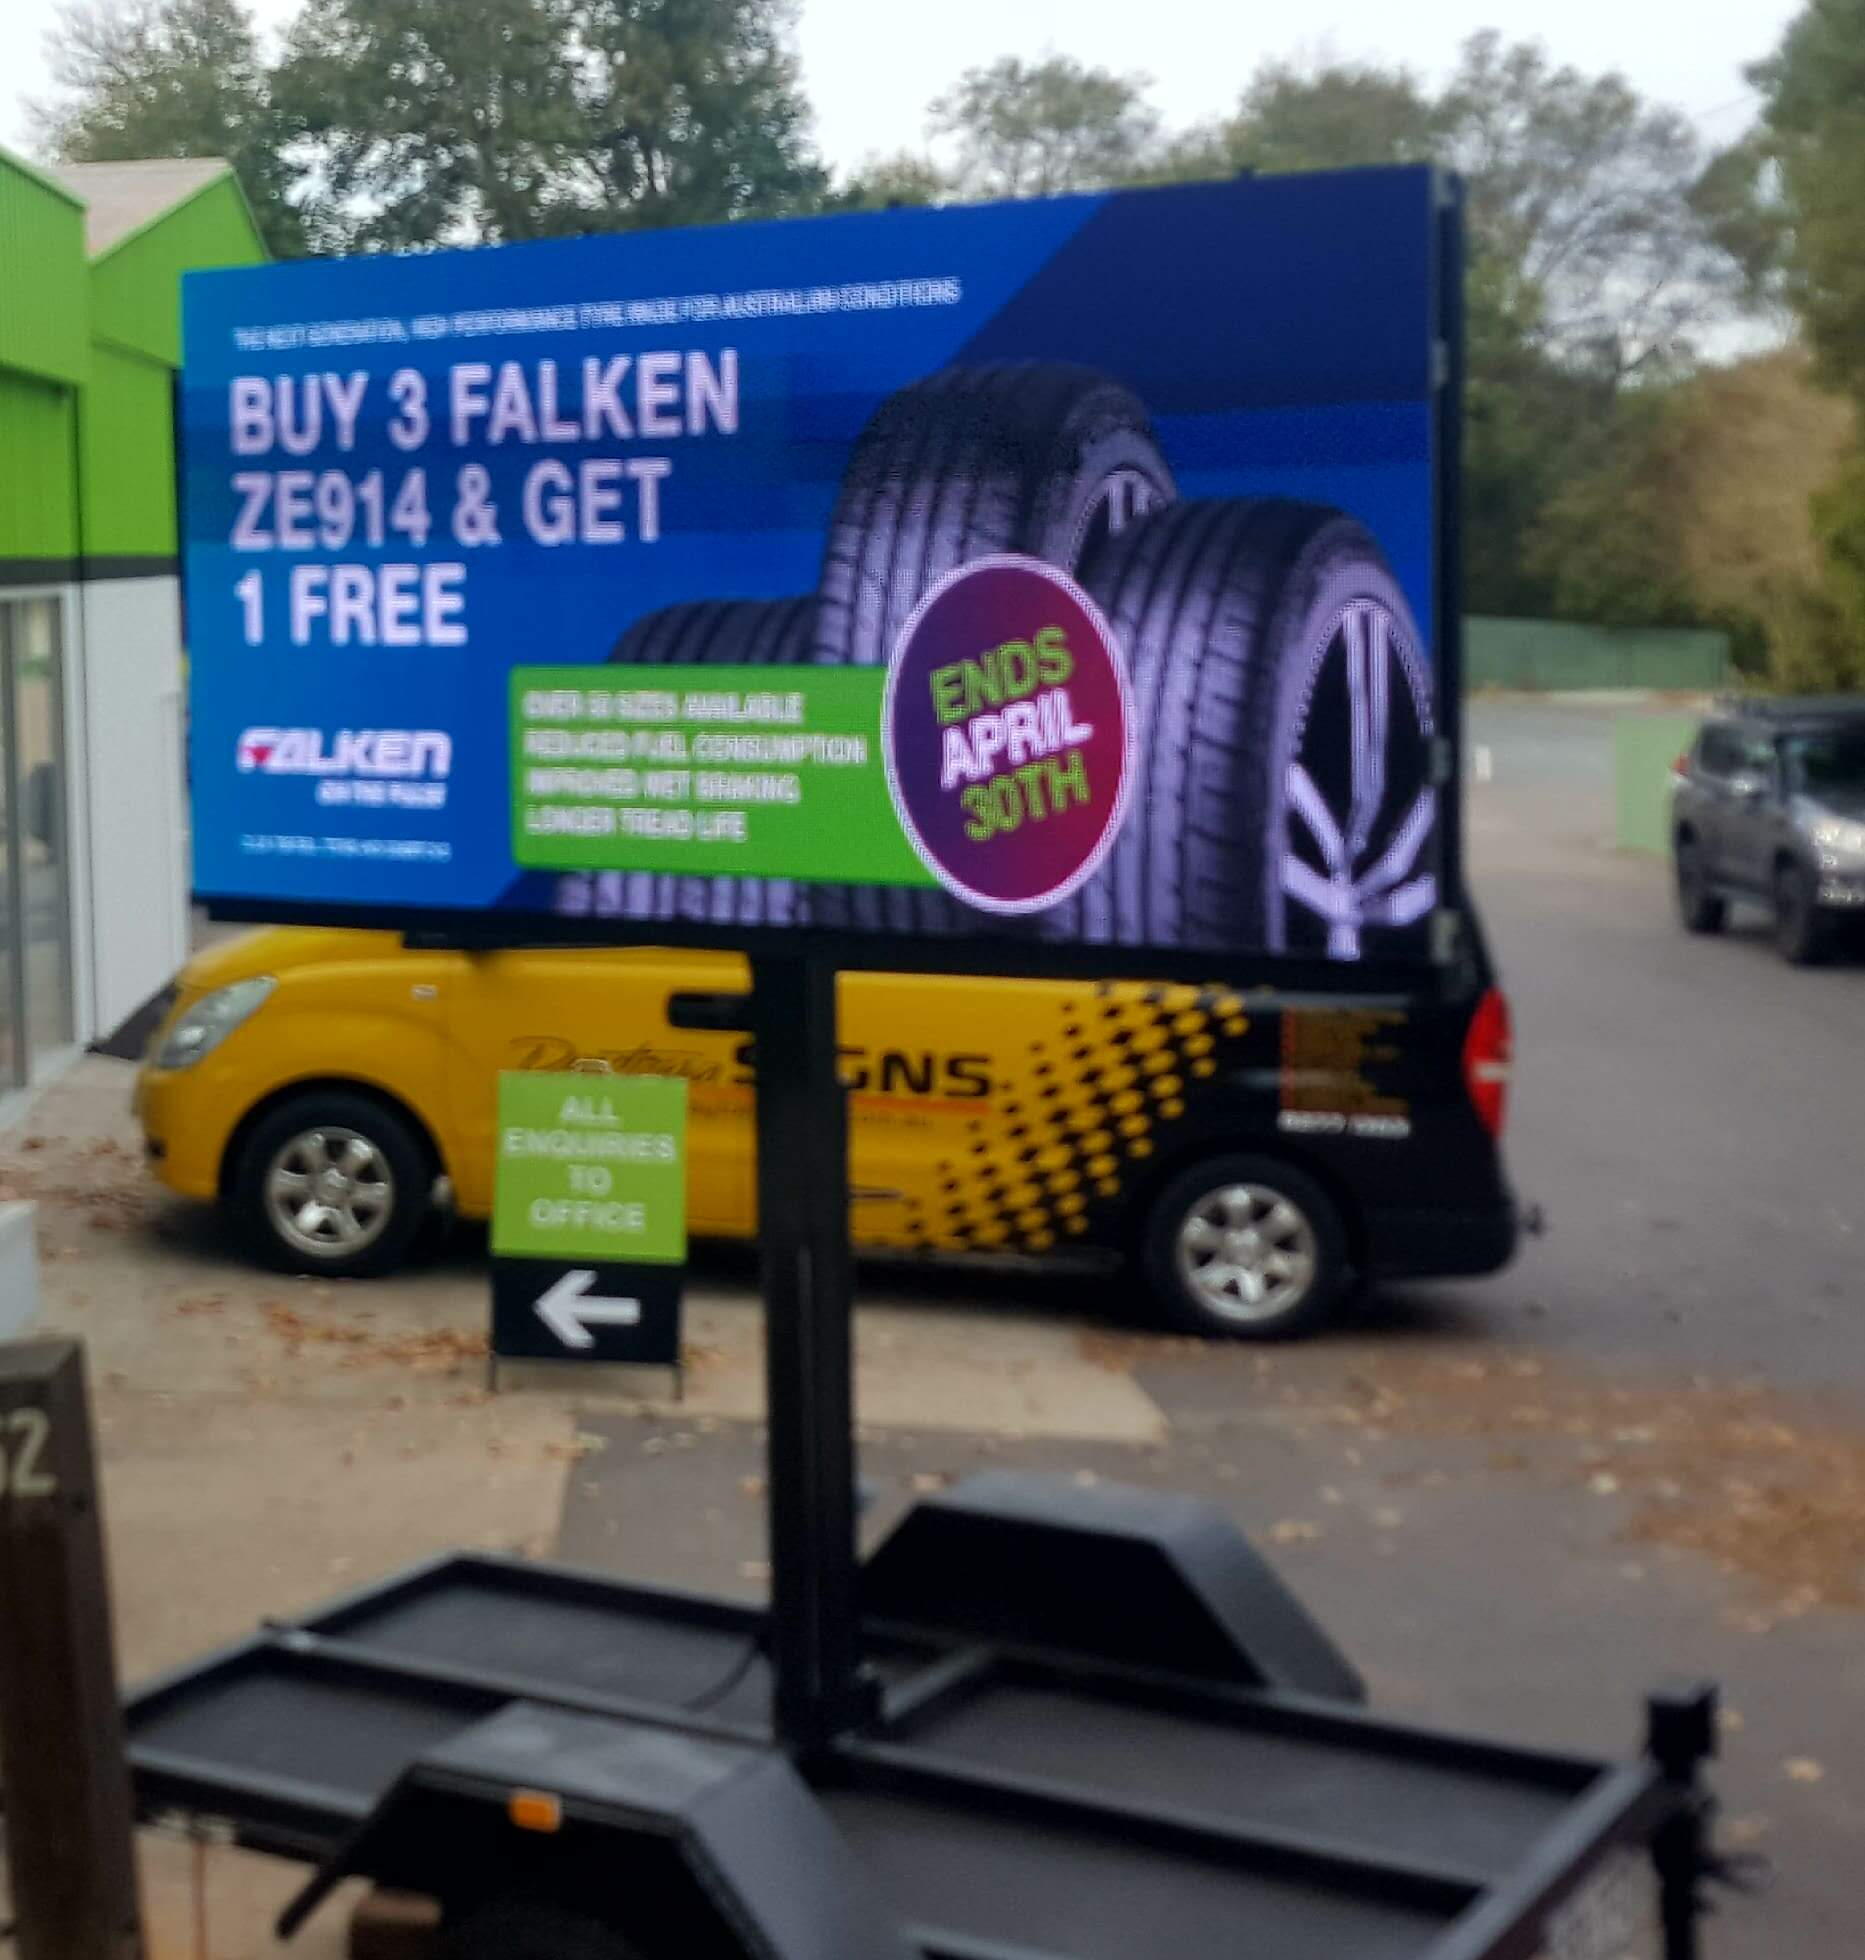 City Discount Tyres, Mt Barker, used Big Vision Screens' giant 16.5 sqm LED Screen to promote their special tyres' discount campaign